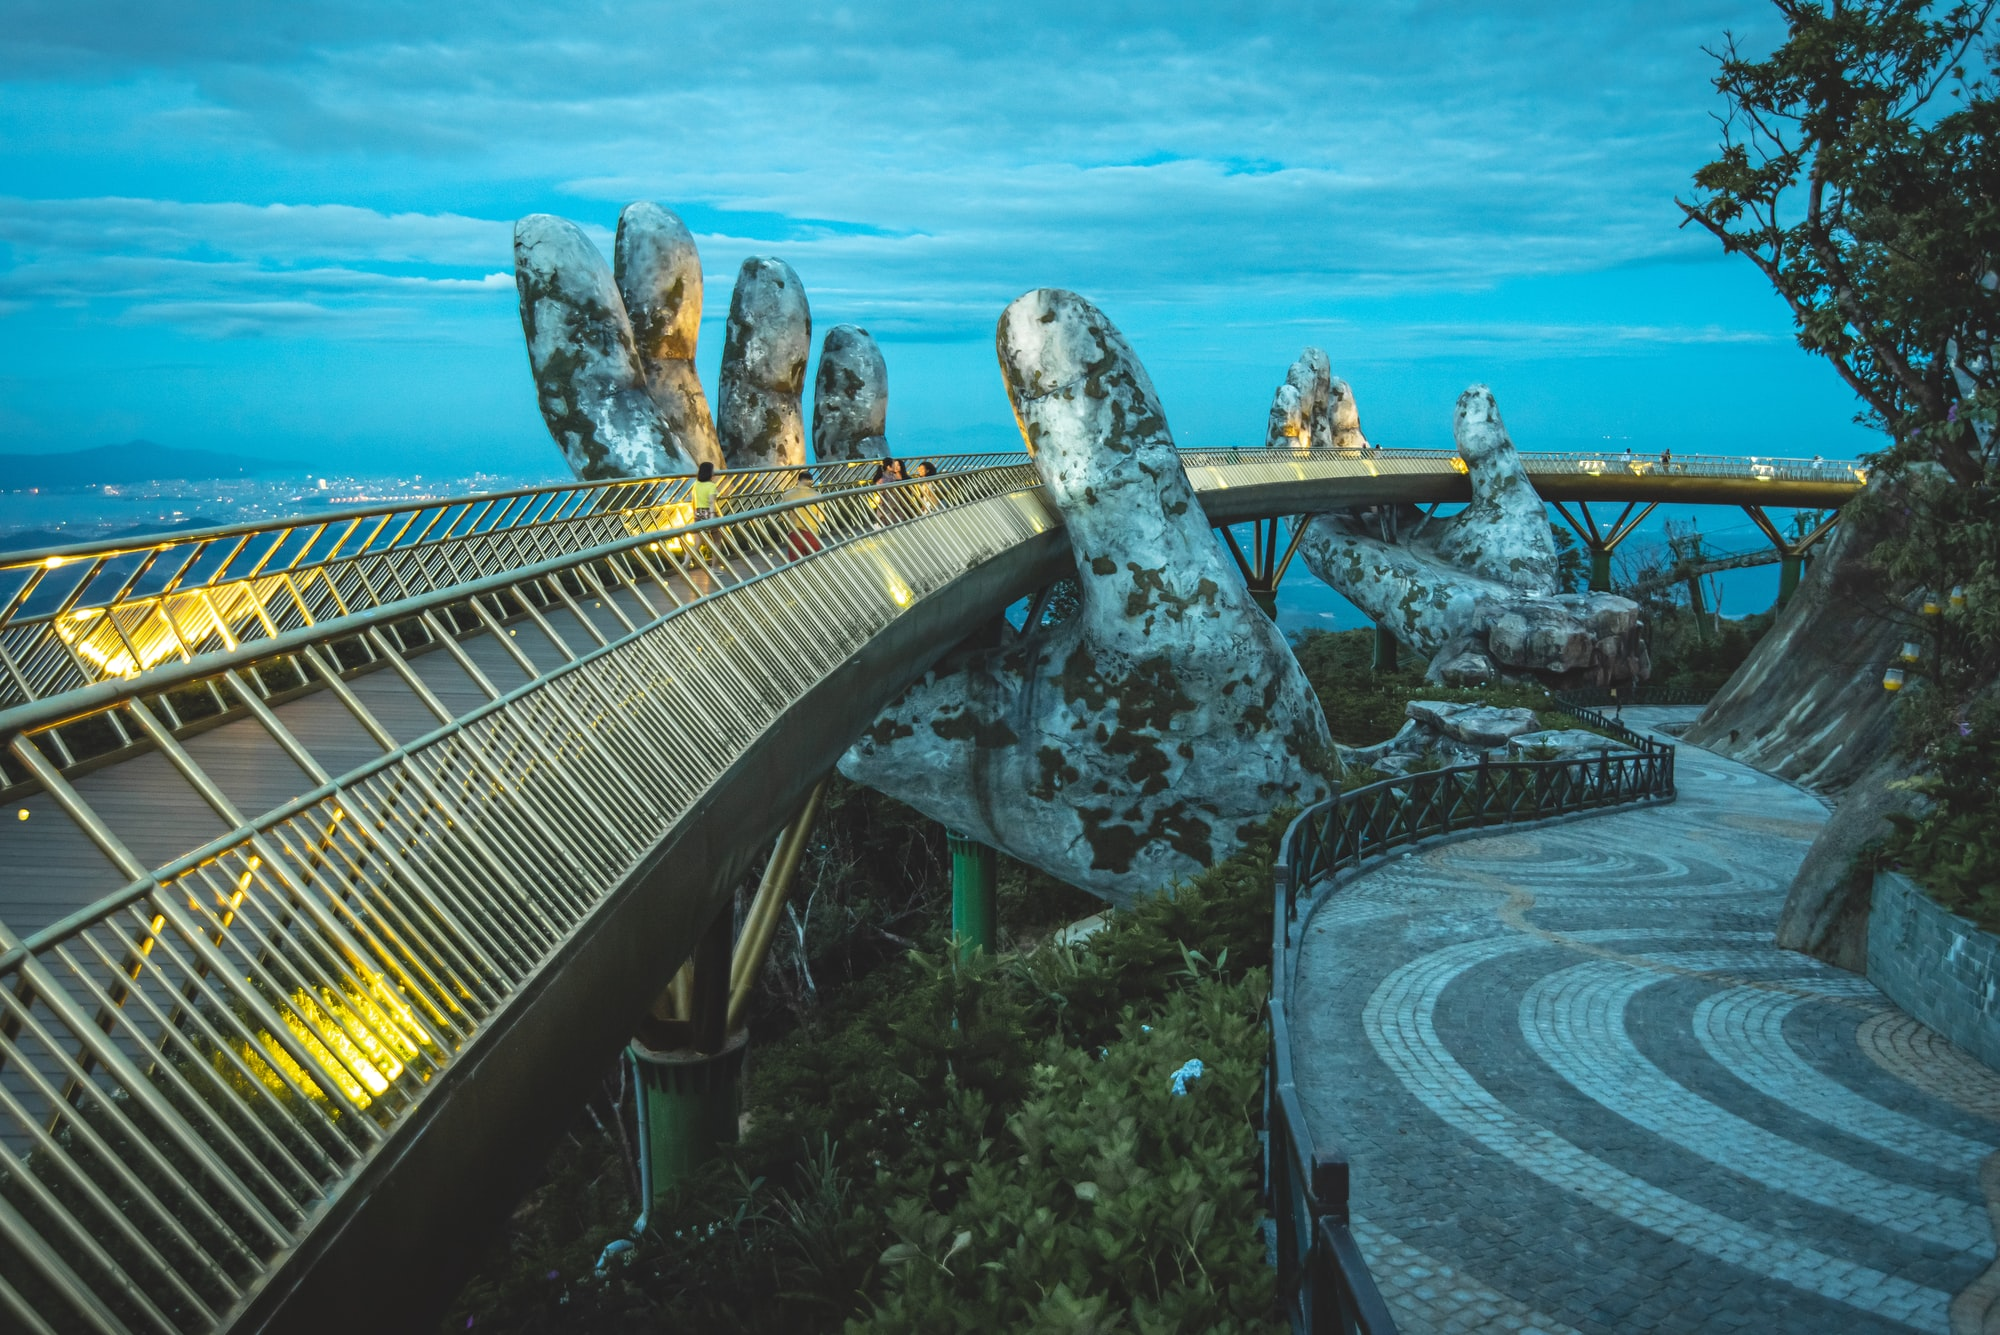 A Comprehensive Danang Travel Guide for first-time visitors